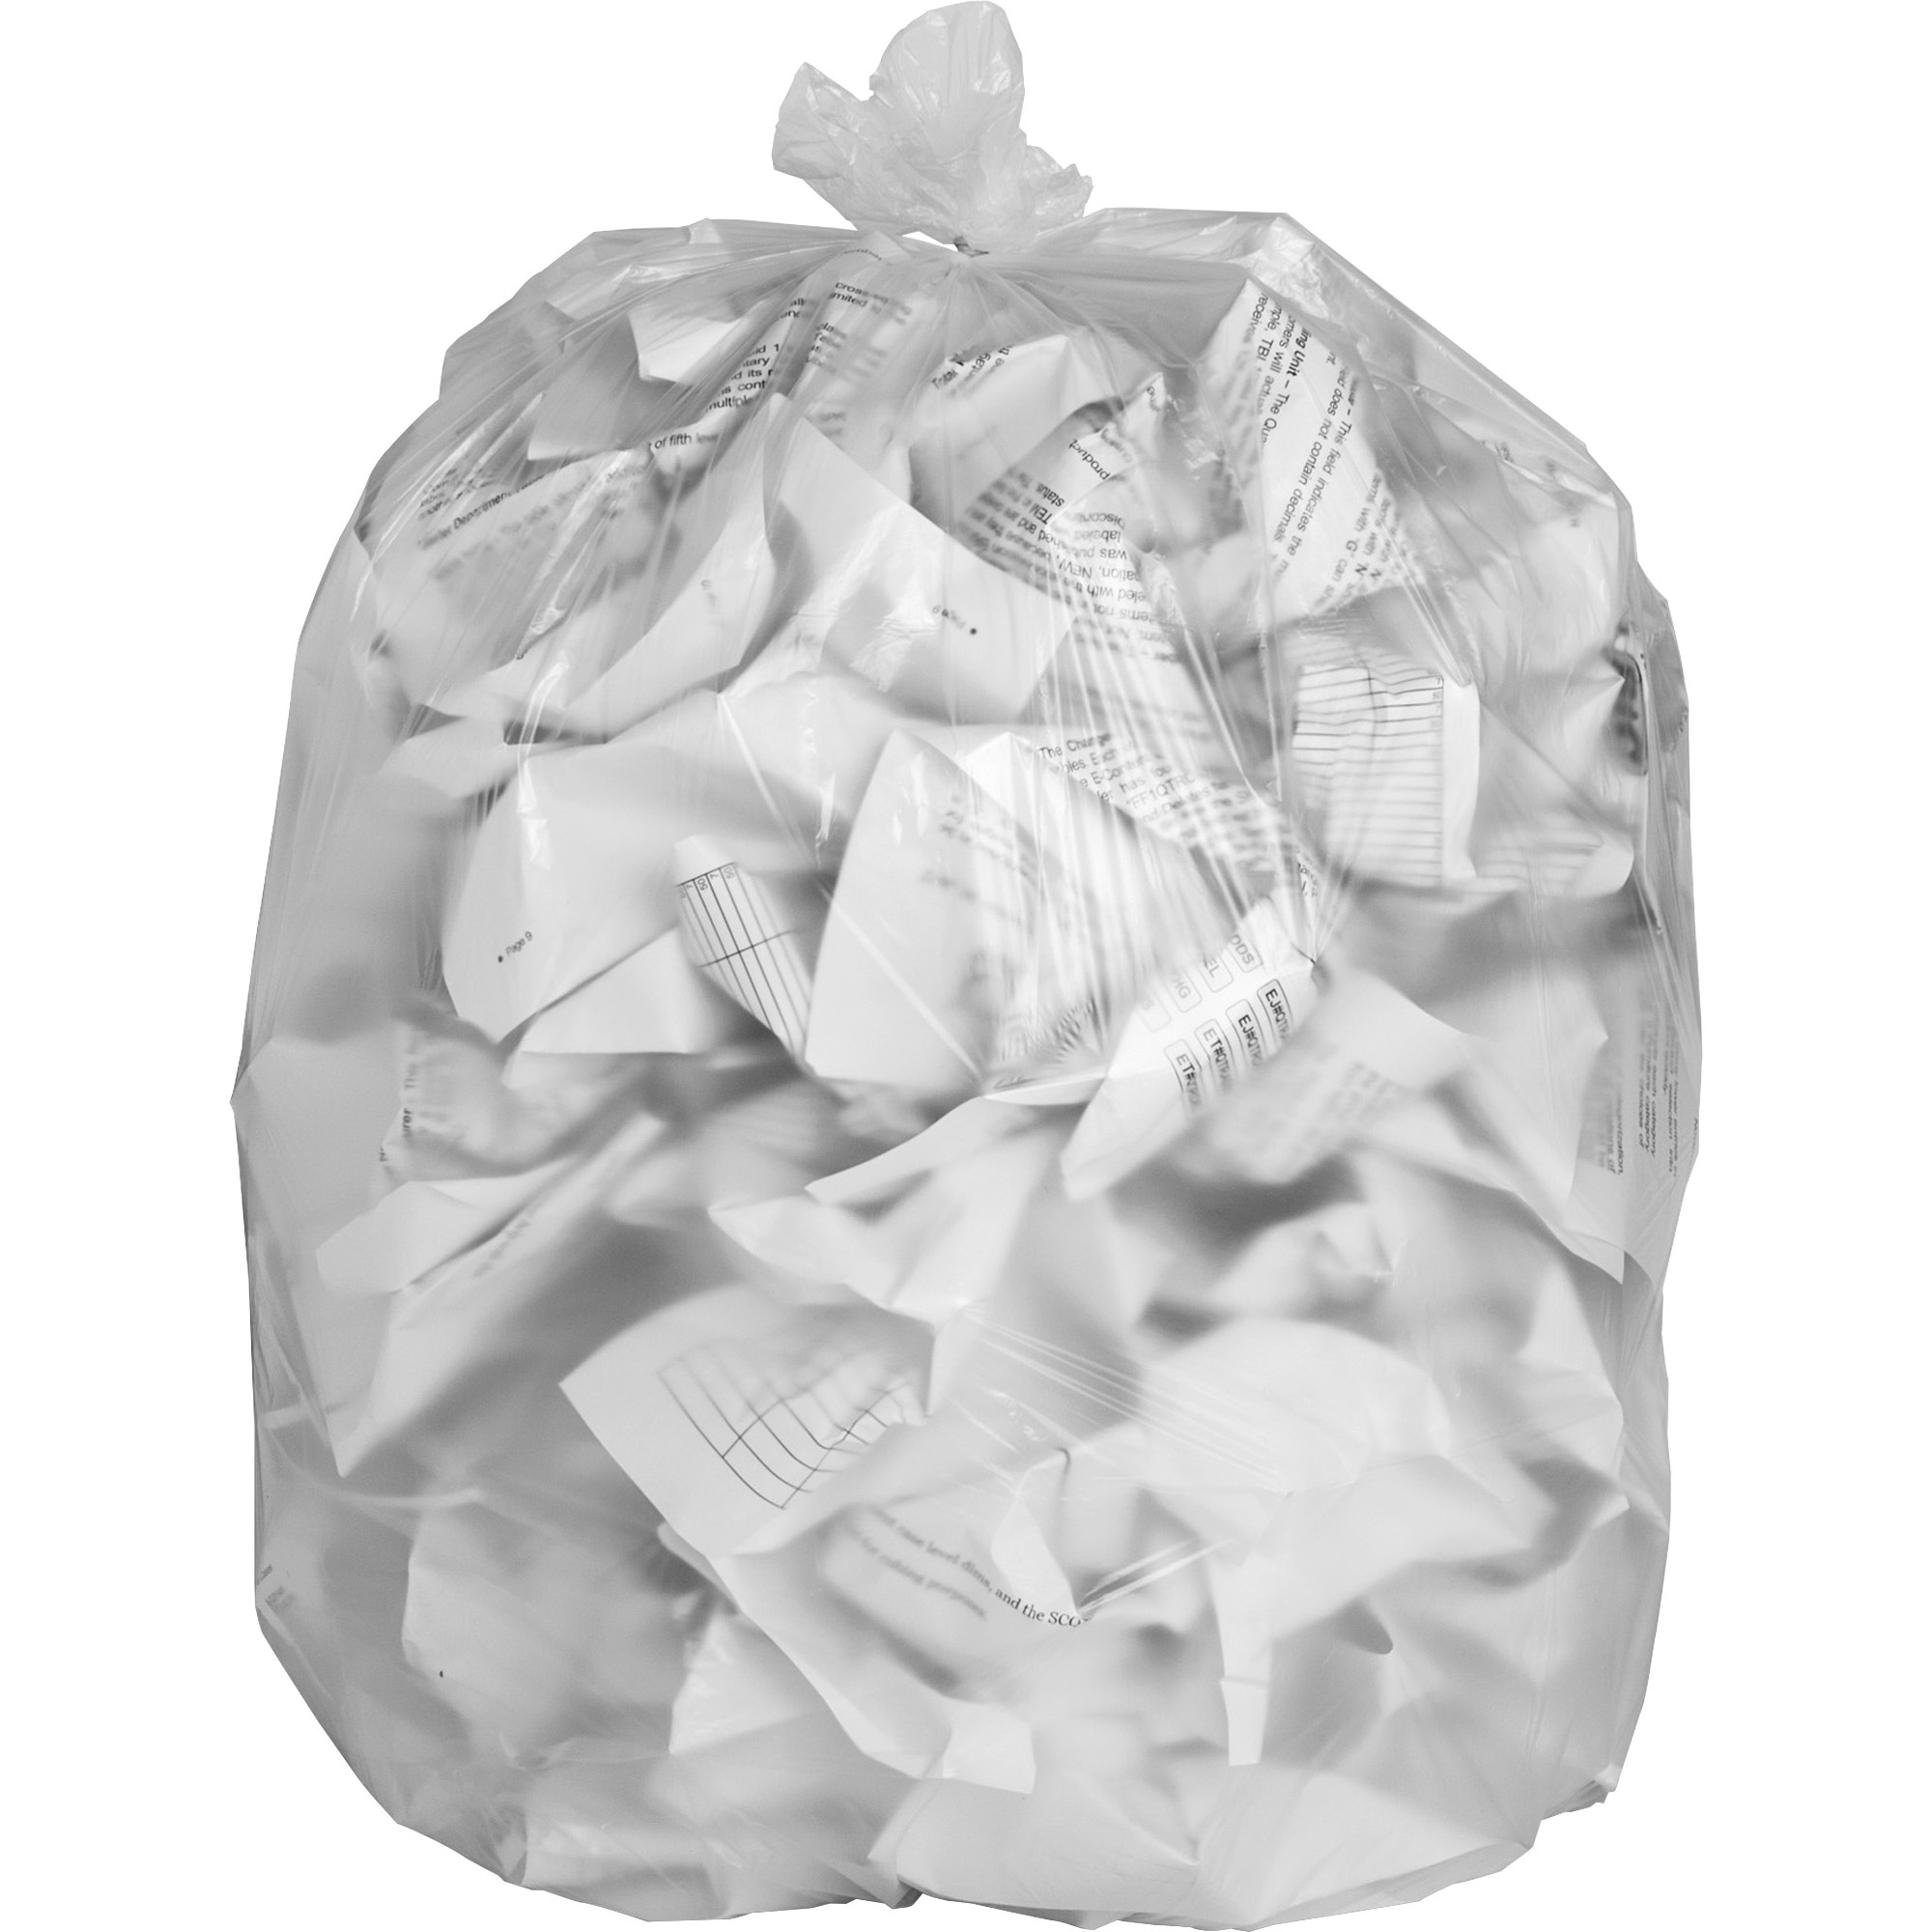 Special Buy, SPZHD386022, High-density Resin Trash Bags, 200 / Carton, Clear, 60 gal